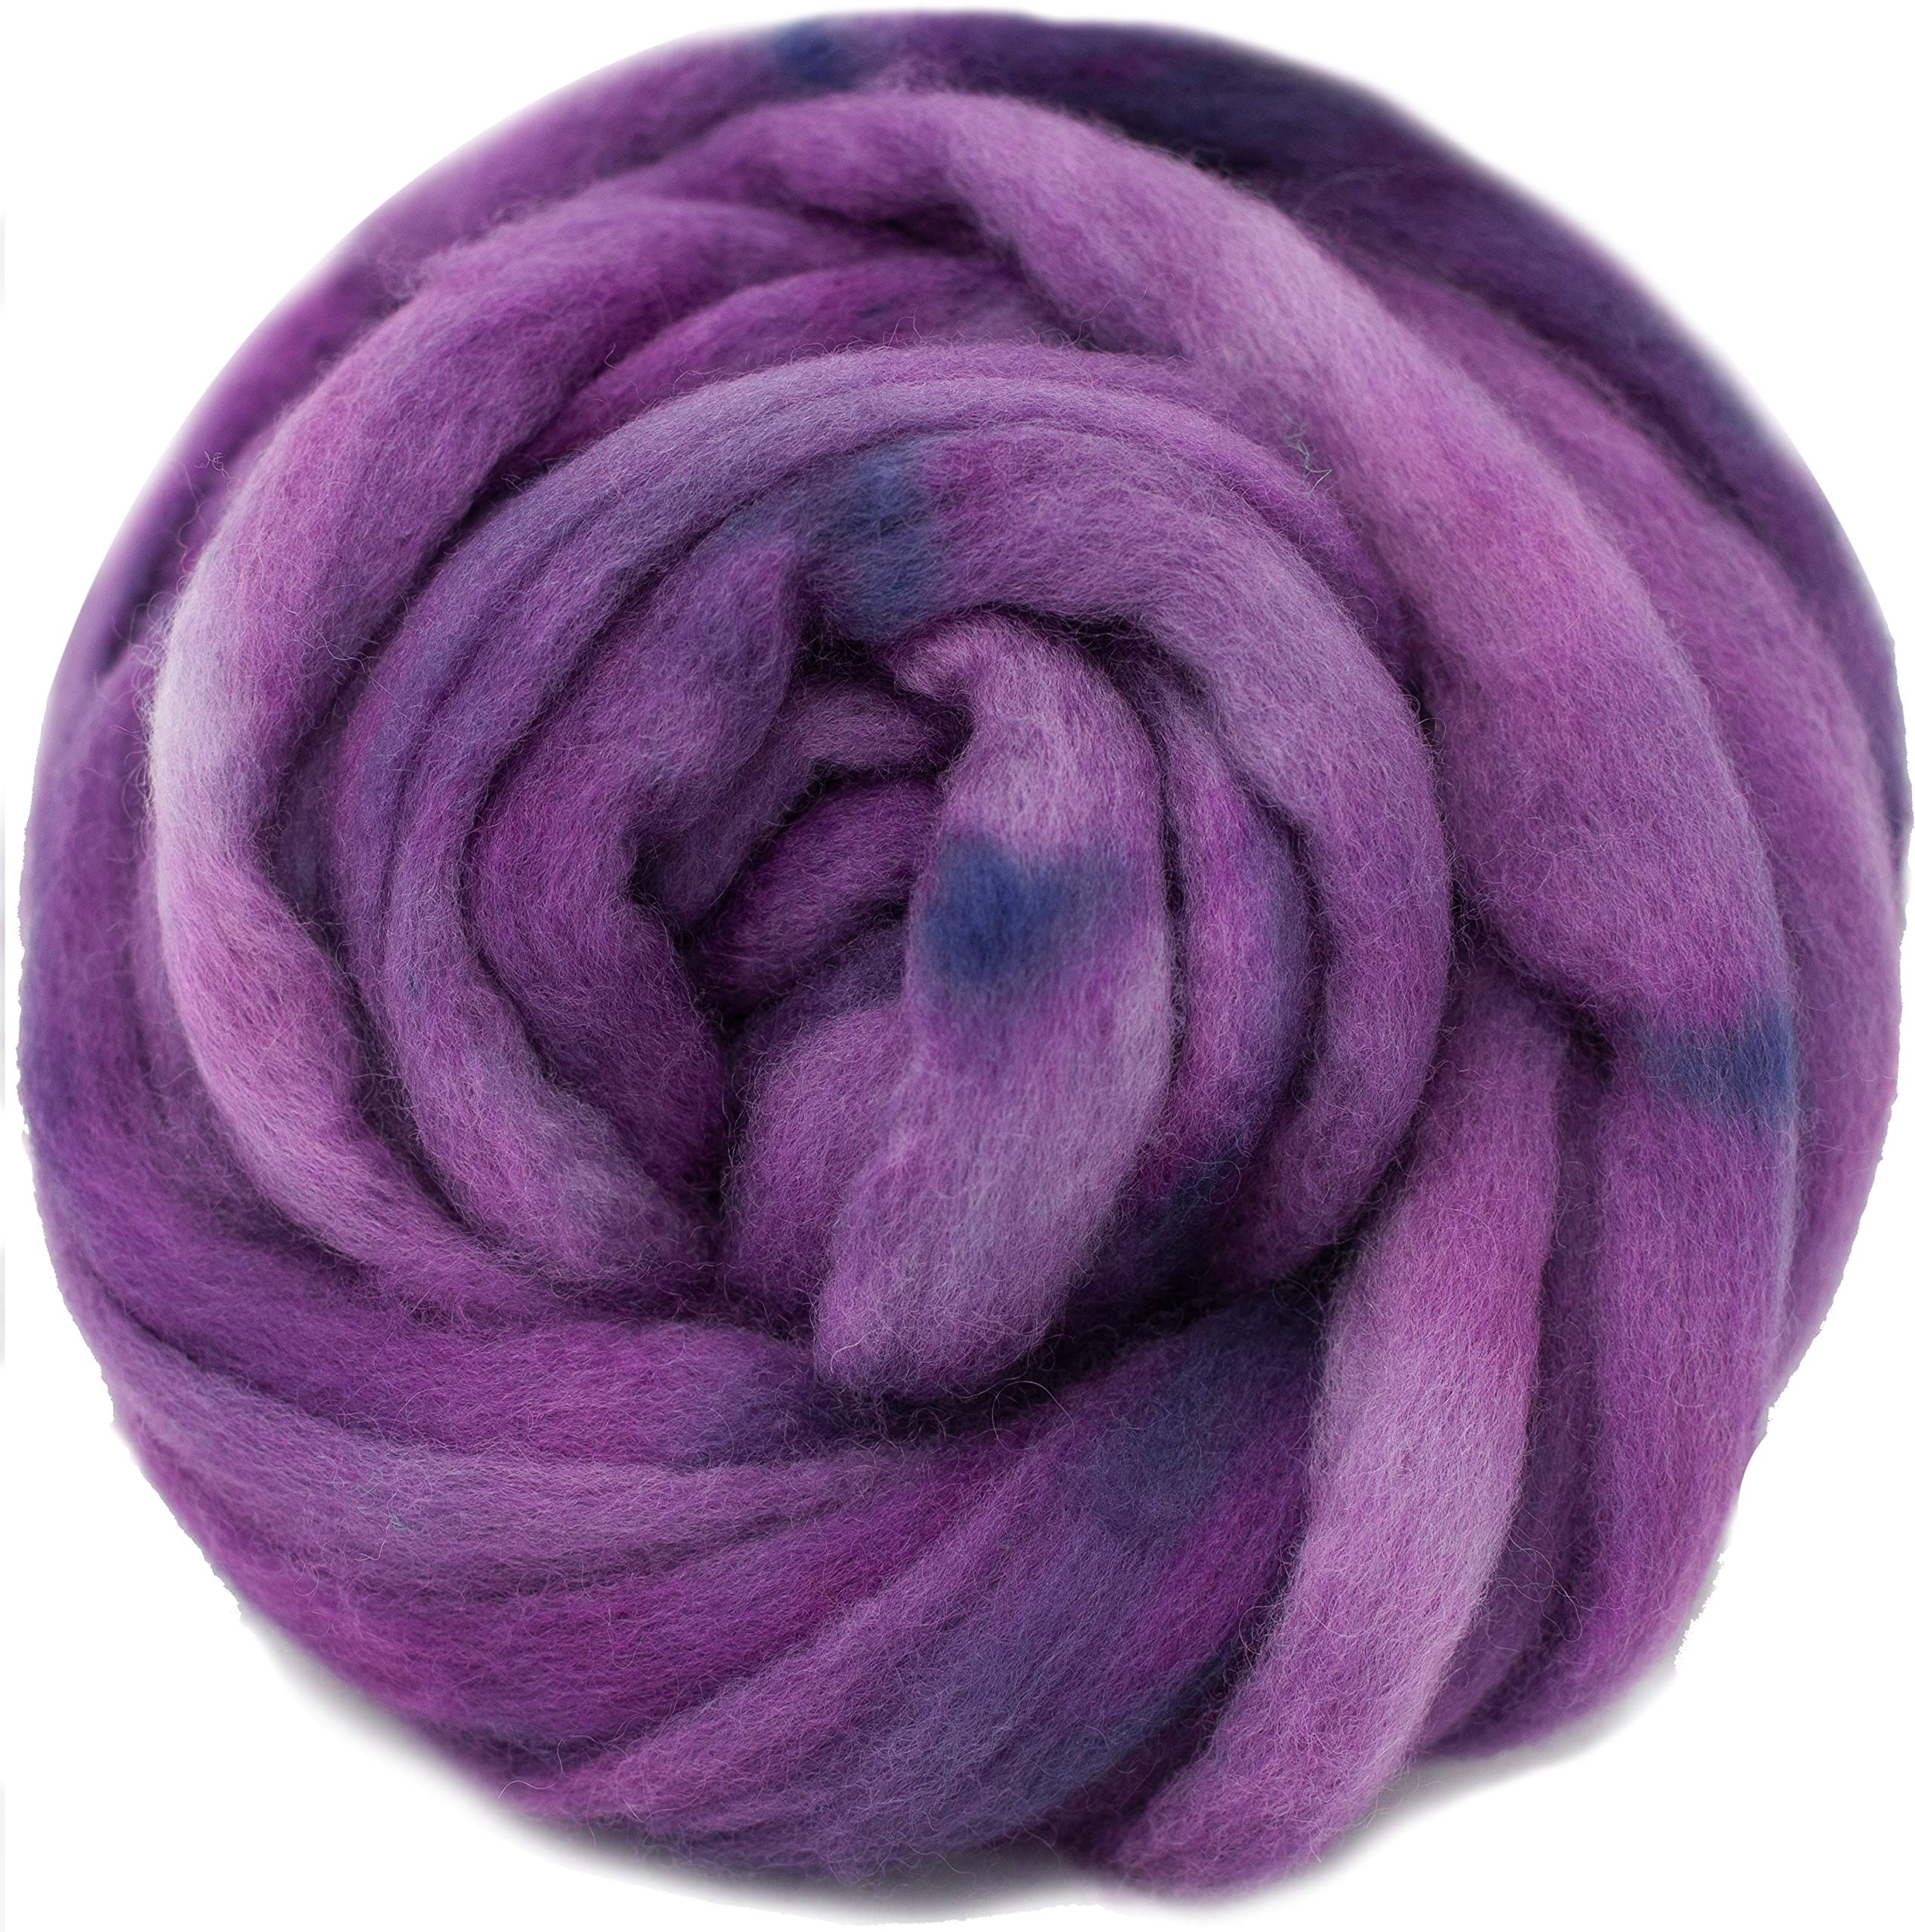 Wool Roving Hand Dyed. Super Soft BFL Combed Top Pre-Drafted for Easy Hand Spinning. Artisanal Craft Fiber ideal for Felting, Weaving, Wall Hangings and Embellishments. 4 Ounce. Purple by Living Dreams Yarn